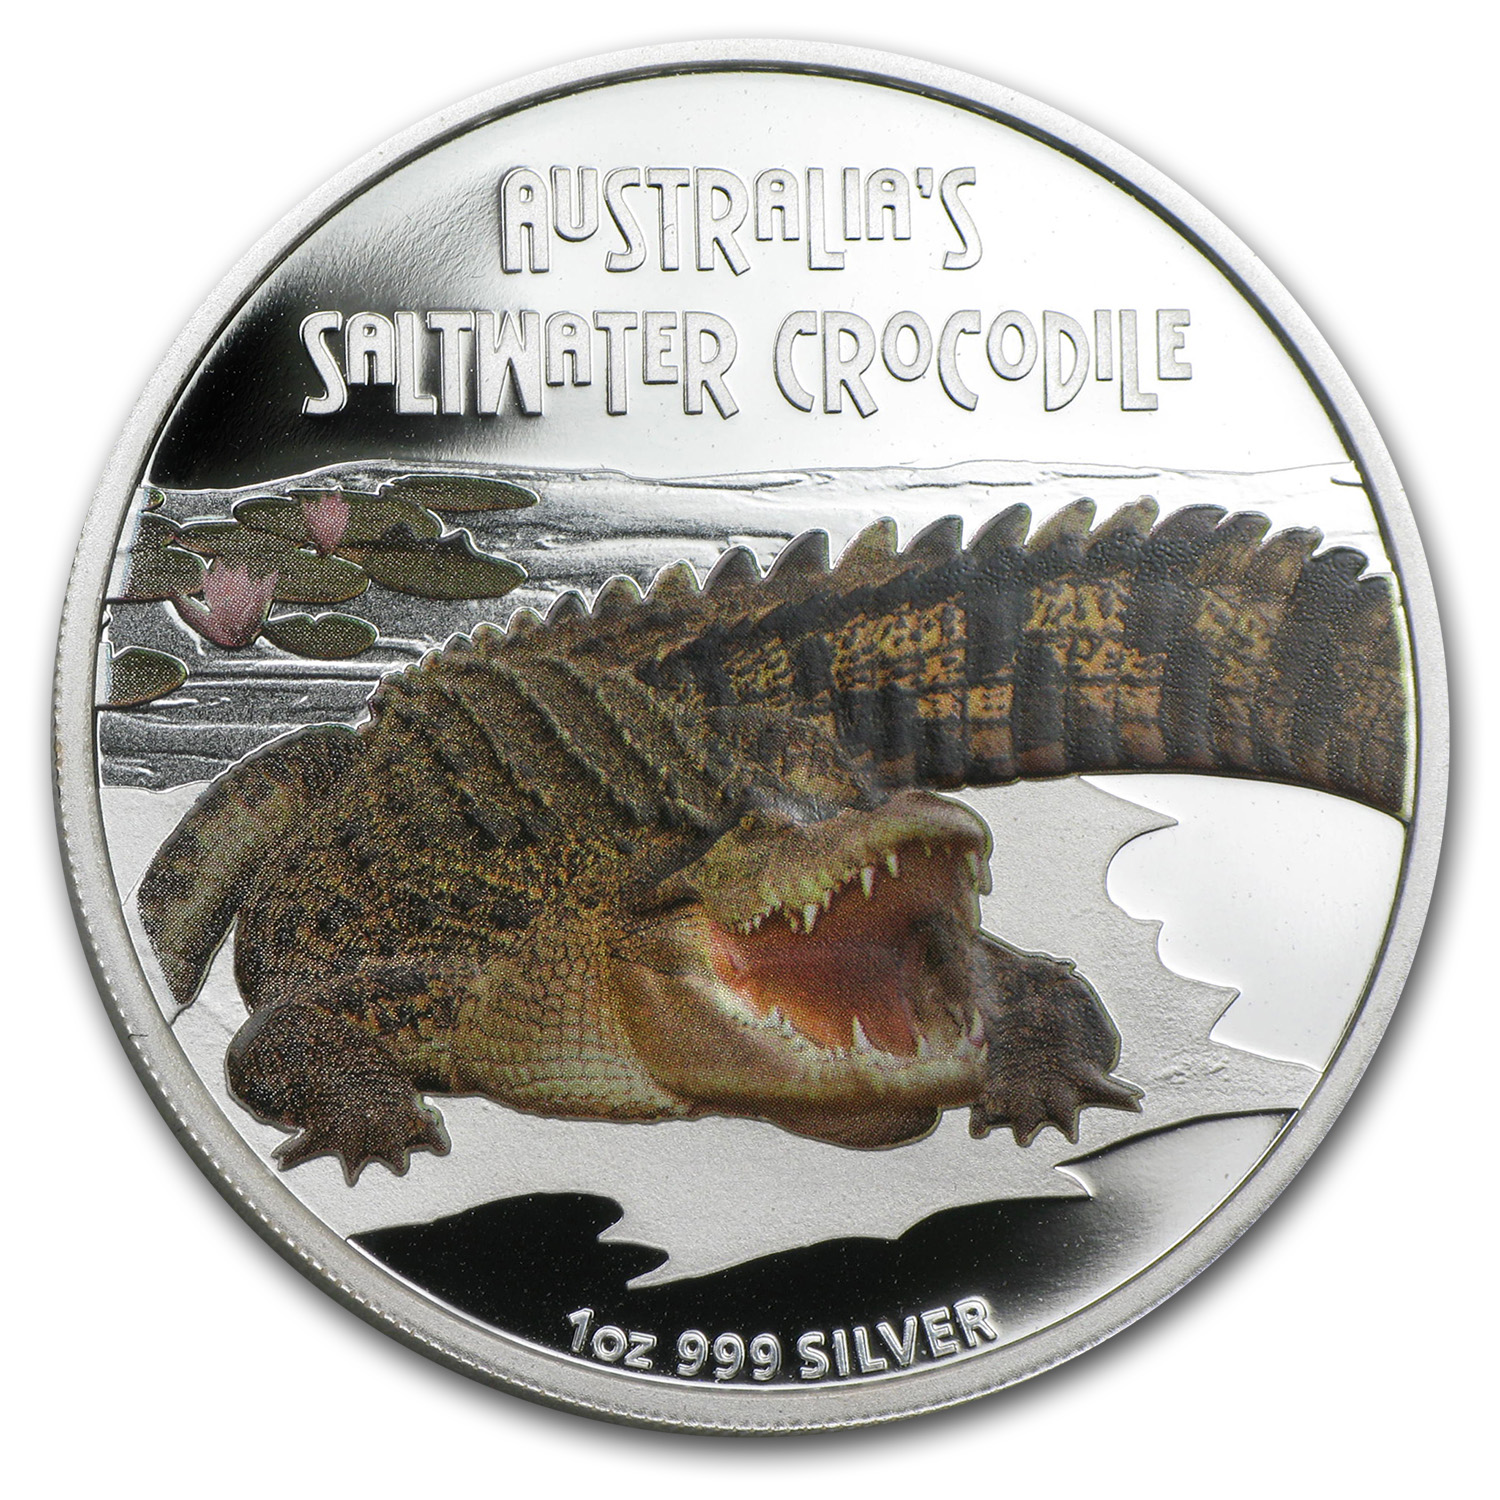 2009 1 oz Silver Australian Saltwater Crocodile Proof